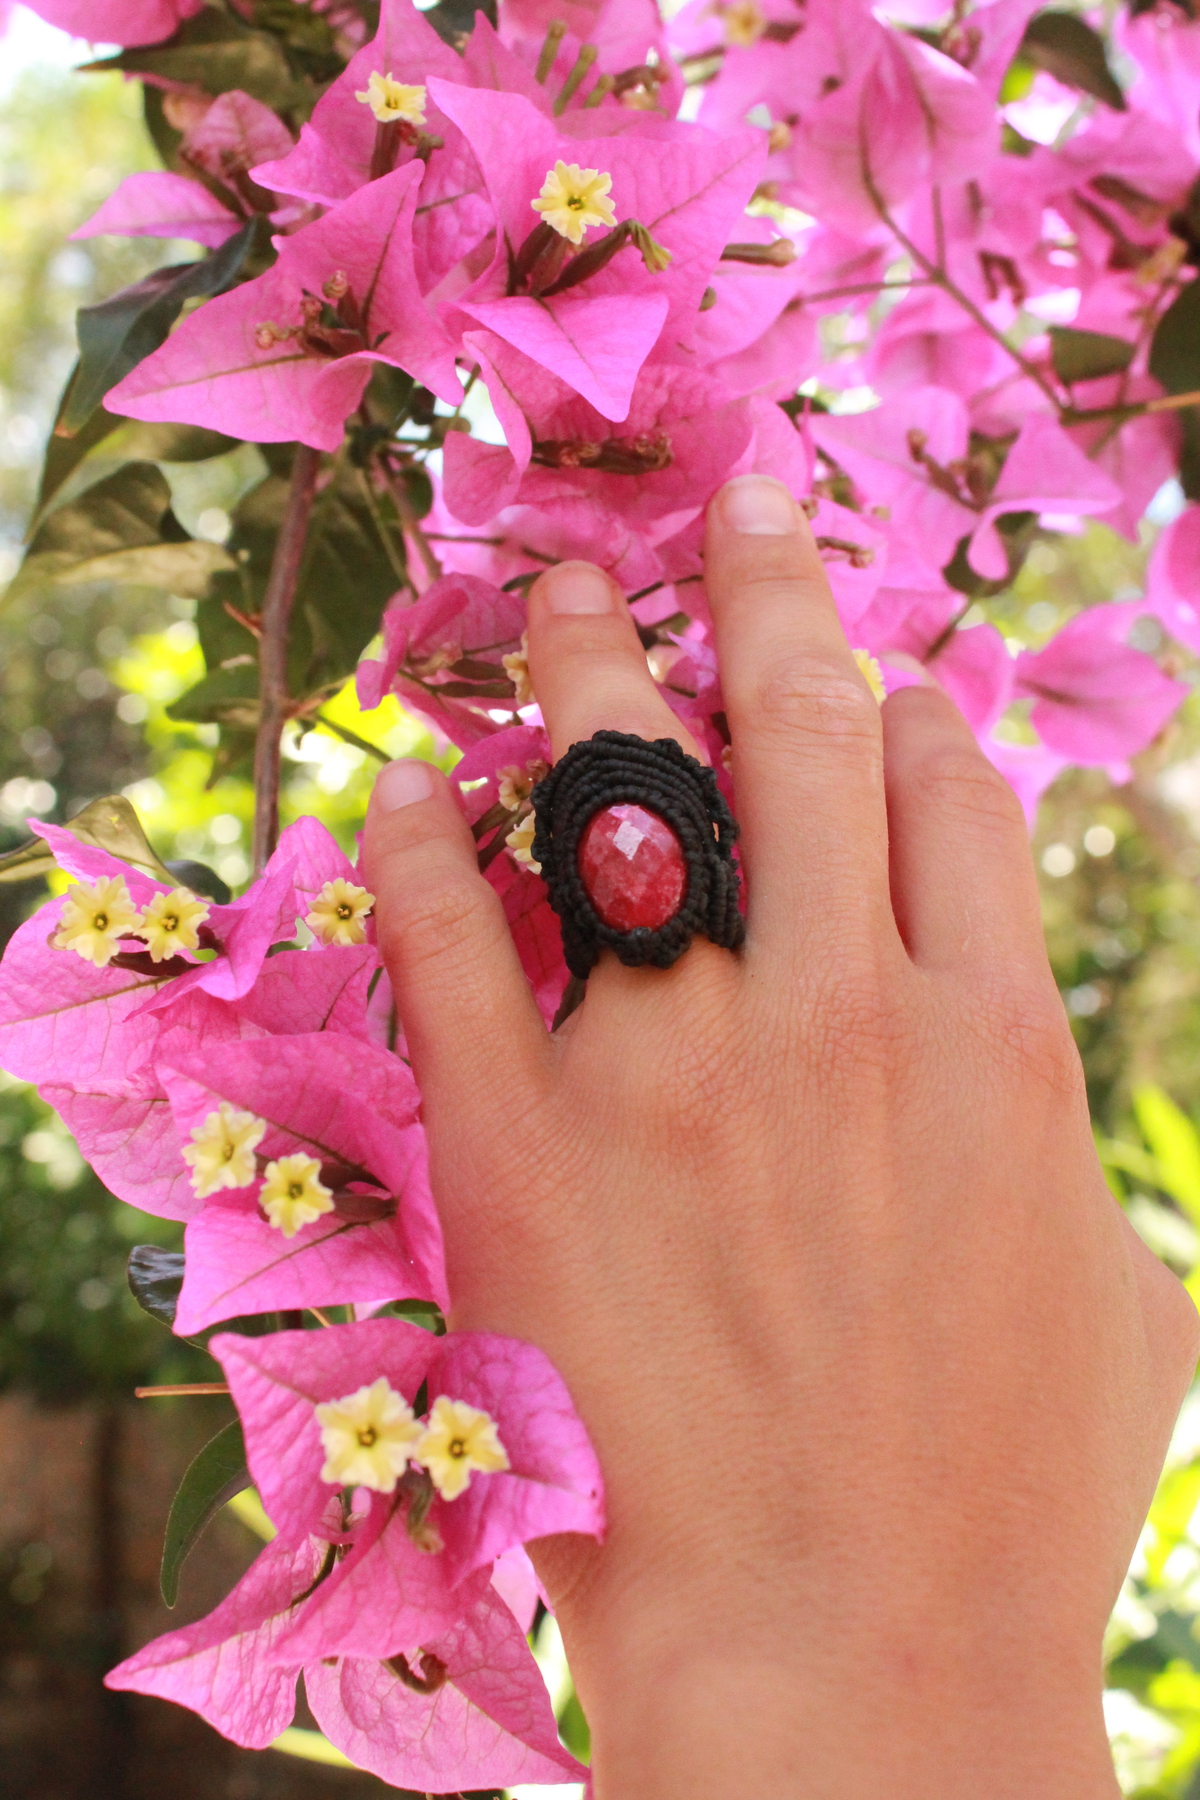 Here is the very special stone that I worked on... Ruby stone can pretend from very high temperature approximately 2050 degree . Also when the heat rises stone gets shinny and more radiant. This stone important in Islamic culture, ancient scriptures. Ruby is placed around middle east and asia.